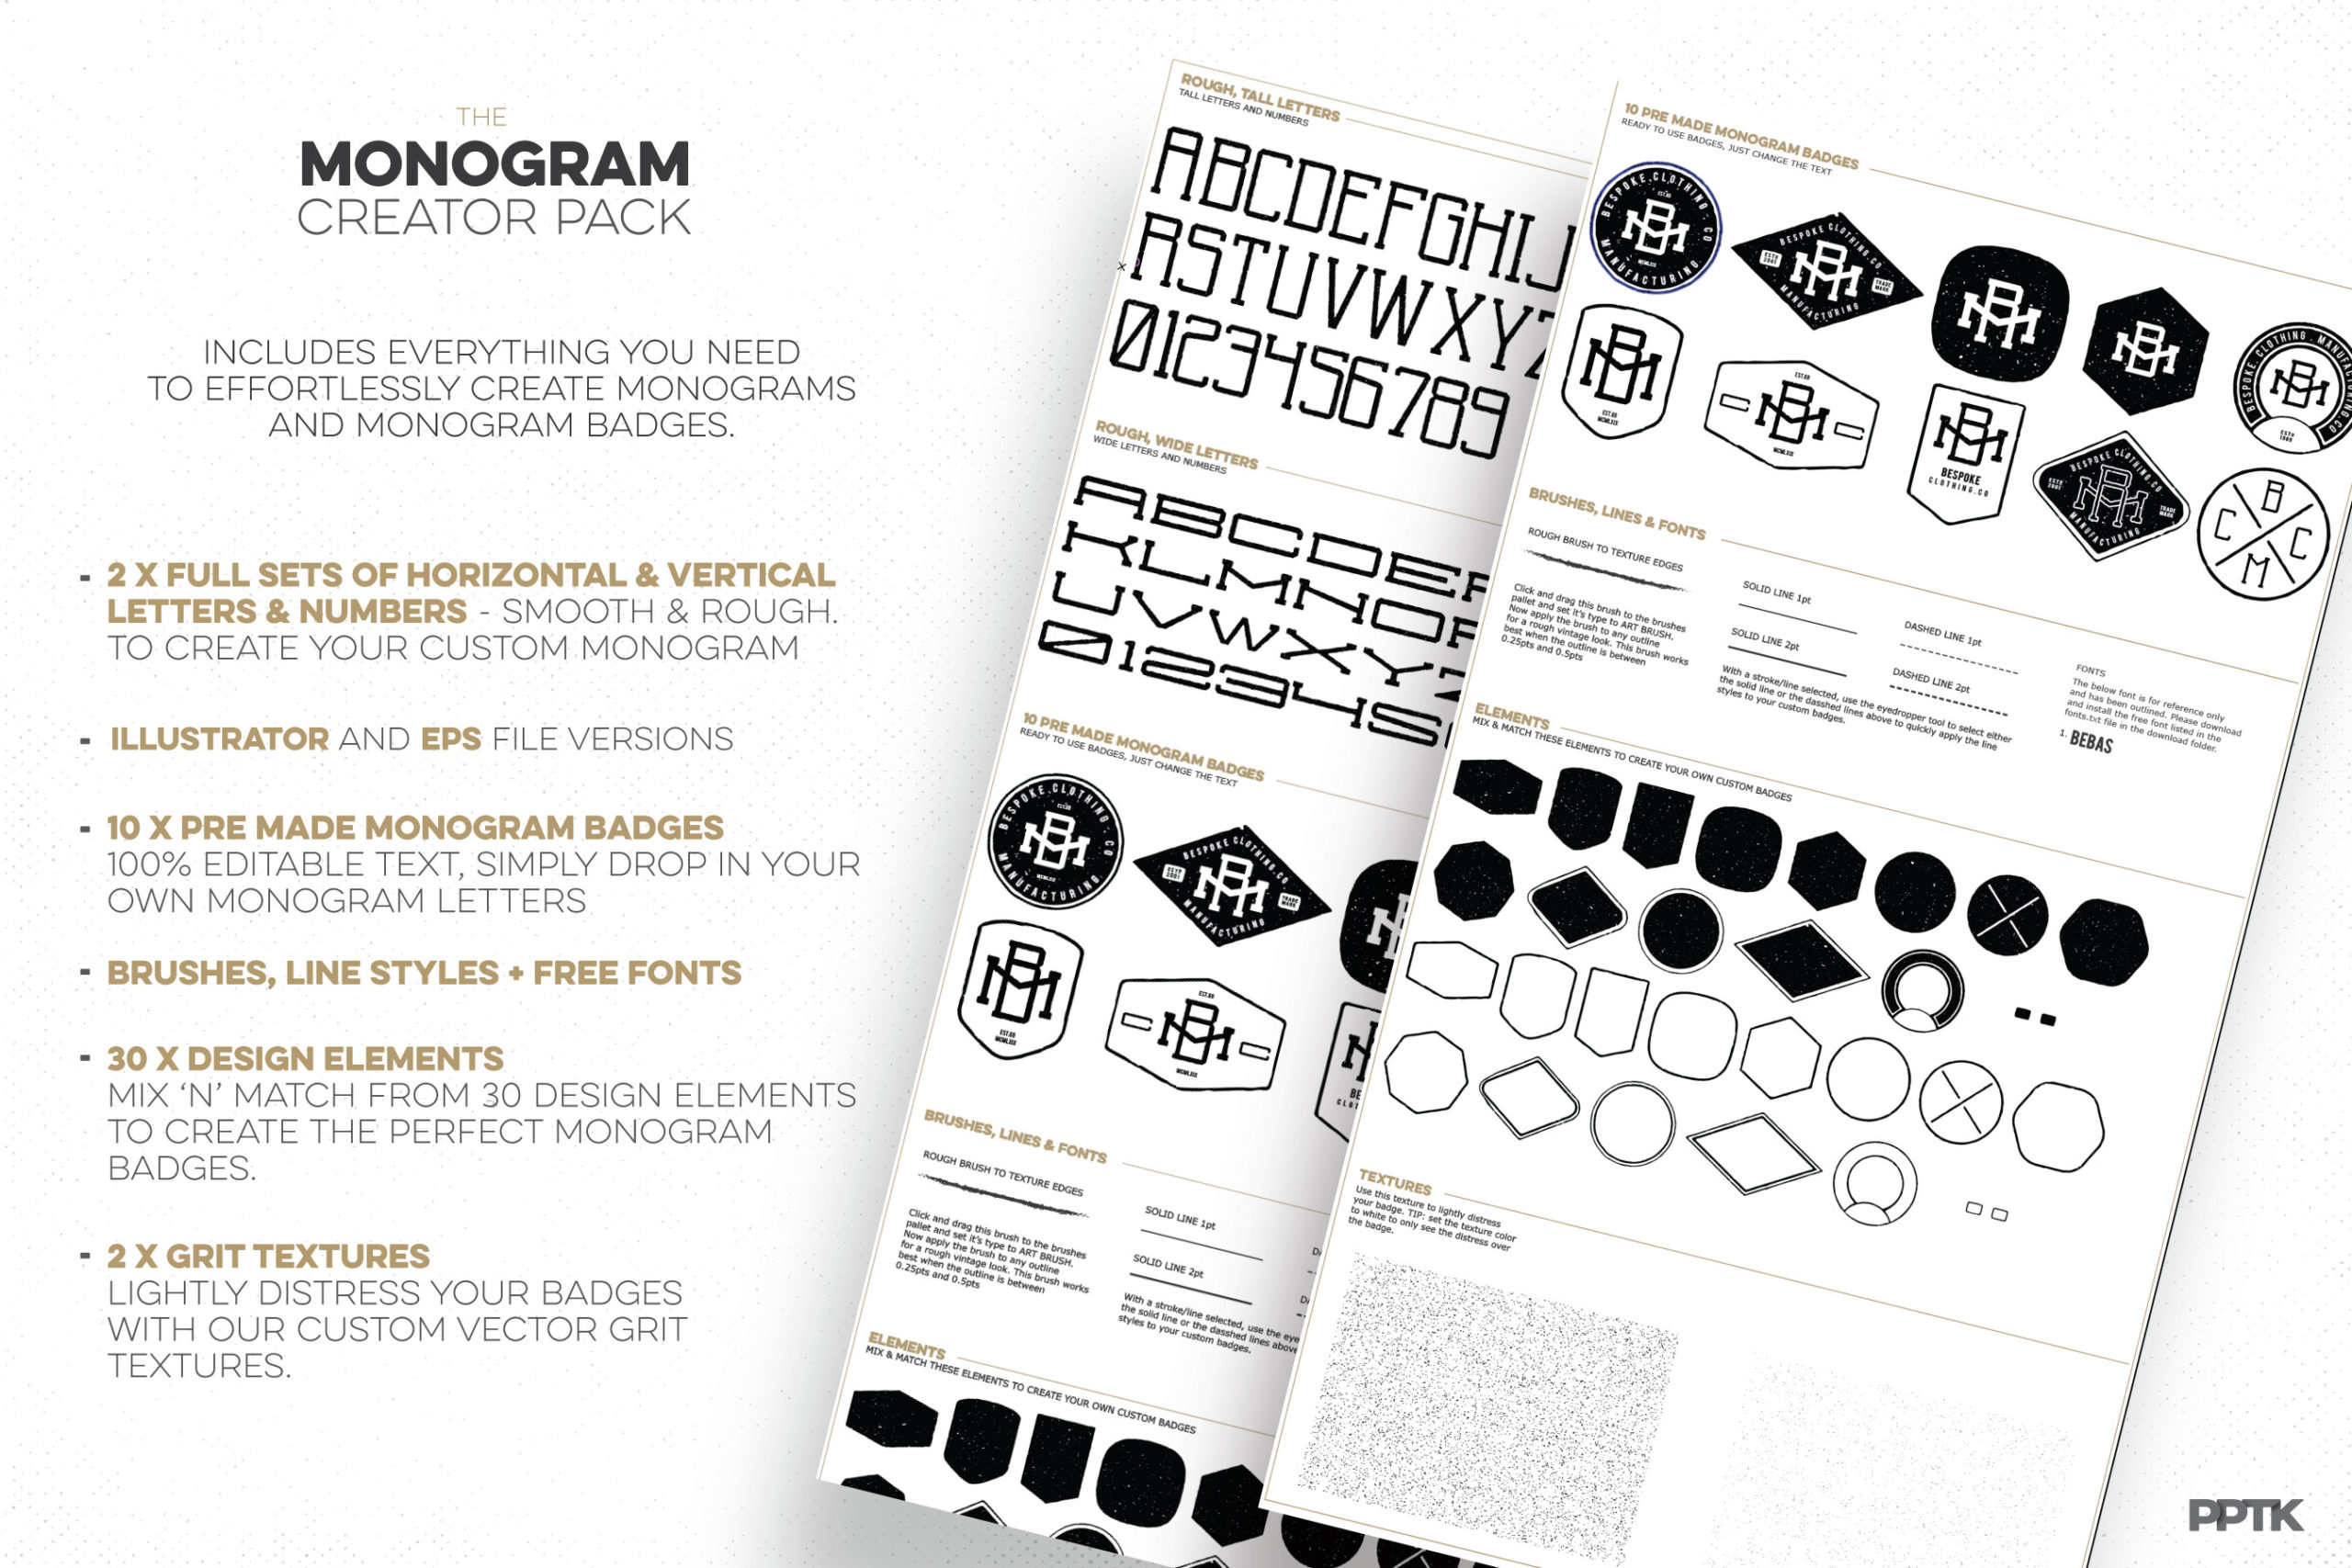 Monogram Creator Pack How To Create